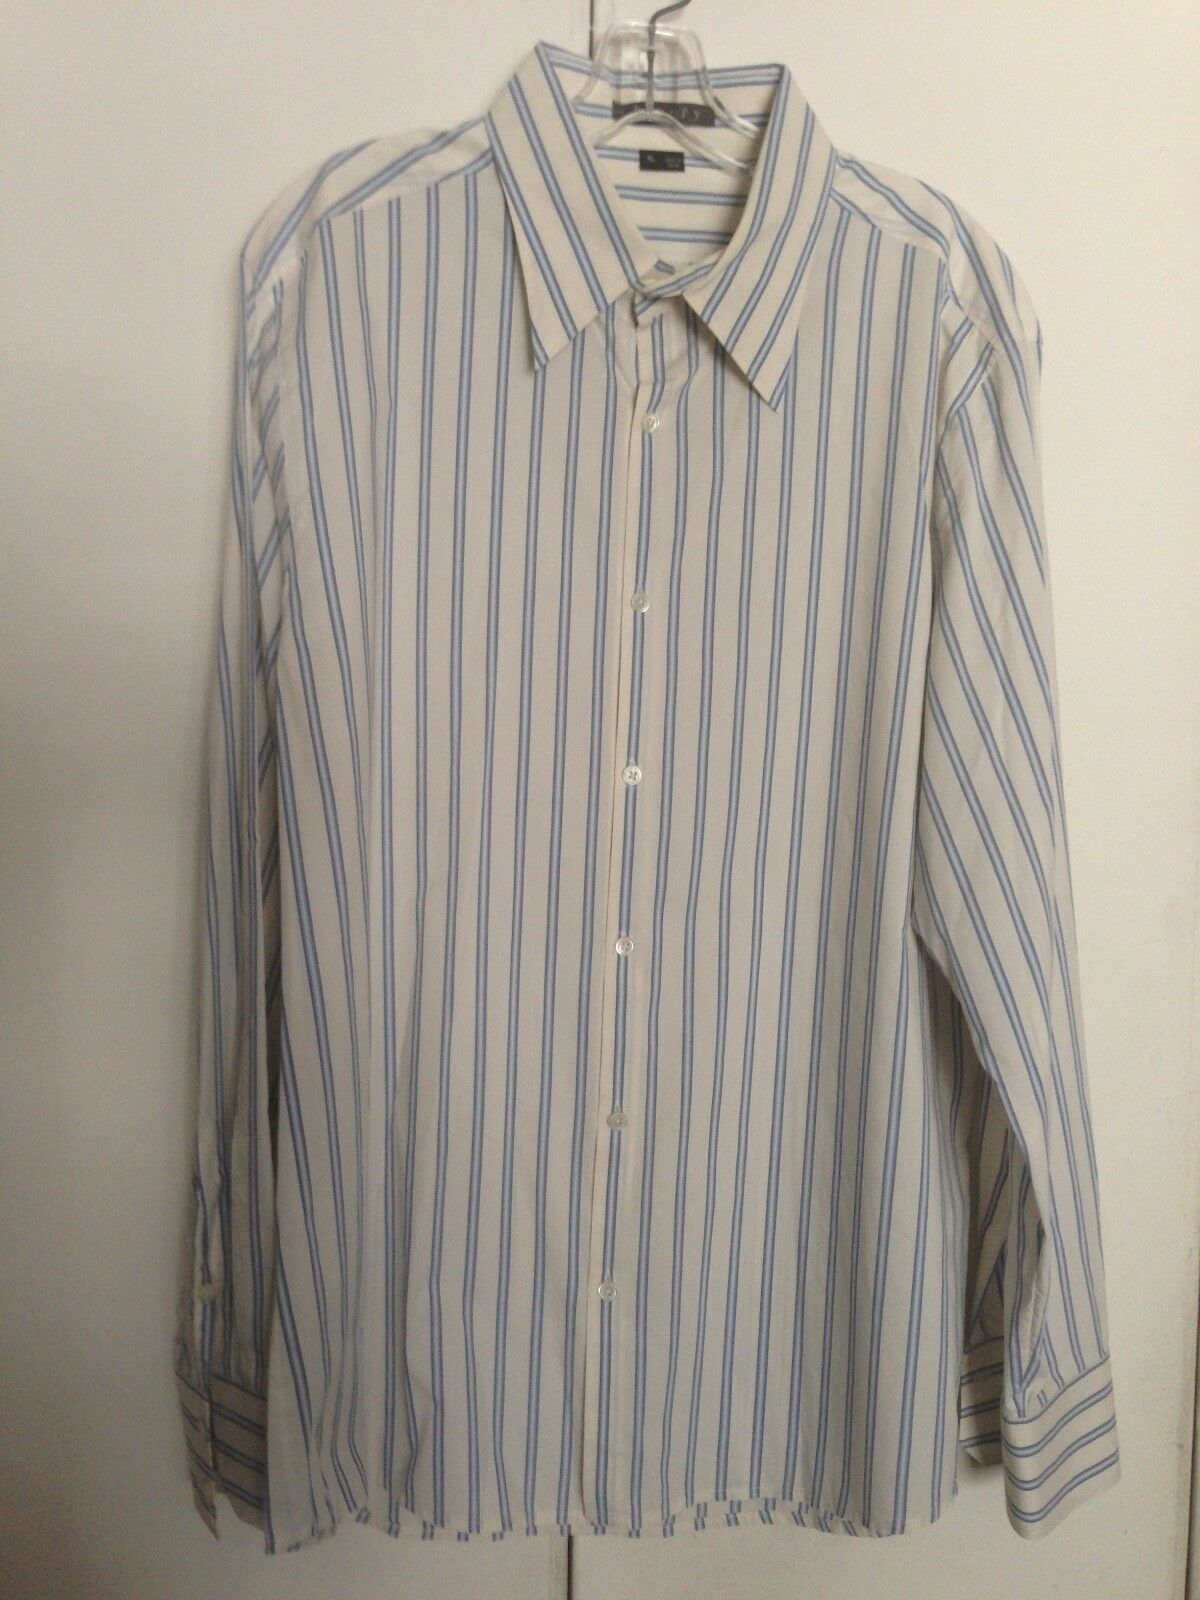 THEORY MENS KLAUS STRIPED BUTTON FRONT LONG SLEEVE SHIRT US SIZE XL